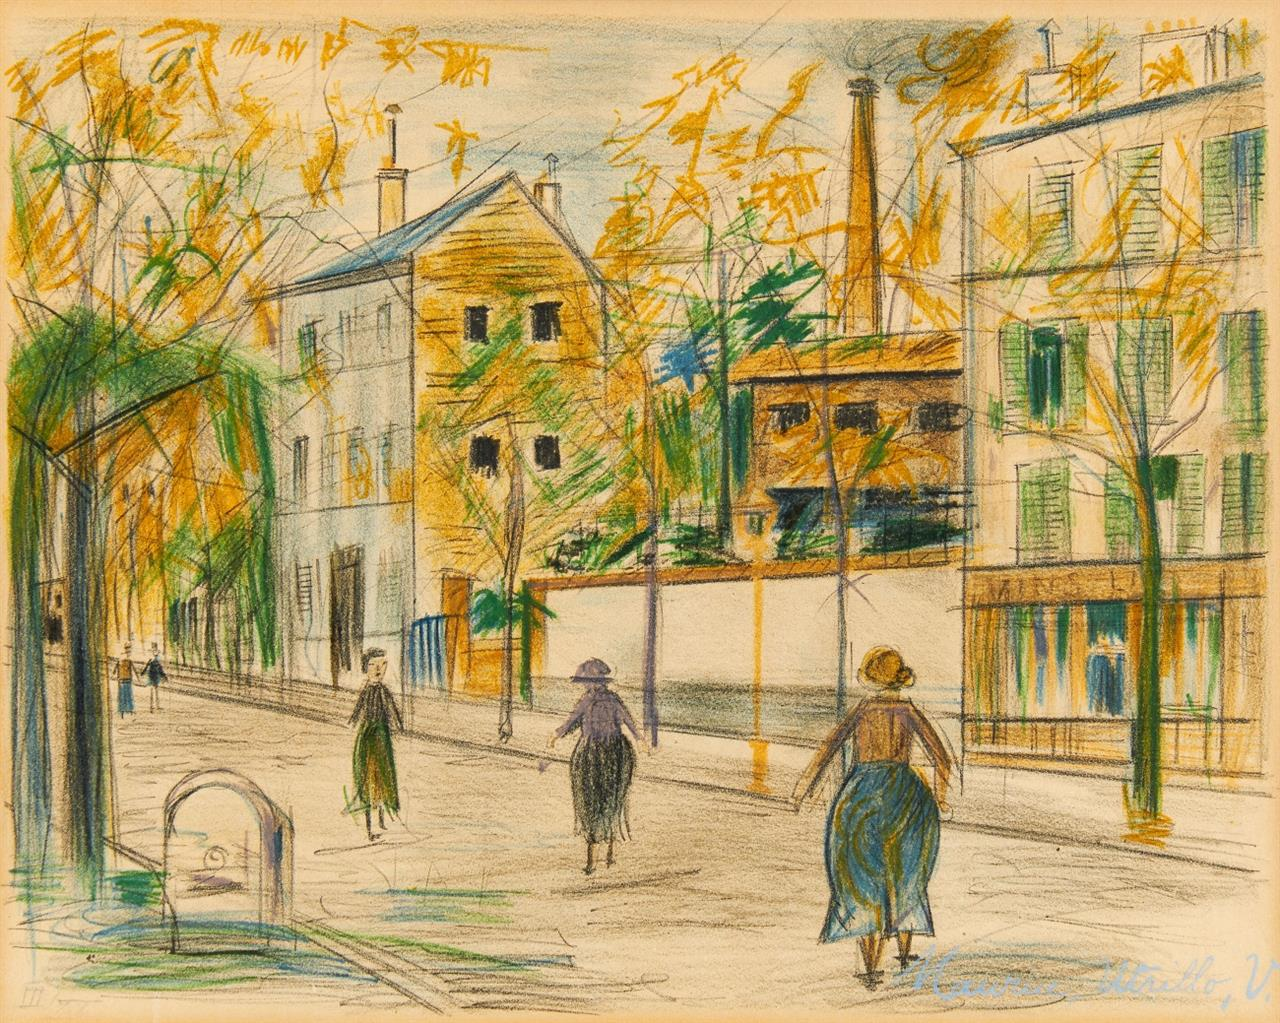 Maurice Utrillo. Vers Franconville. Farblithographie. Ex. III/XX.